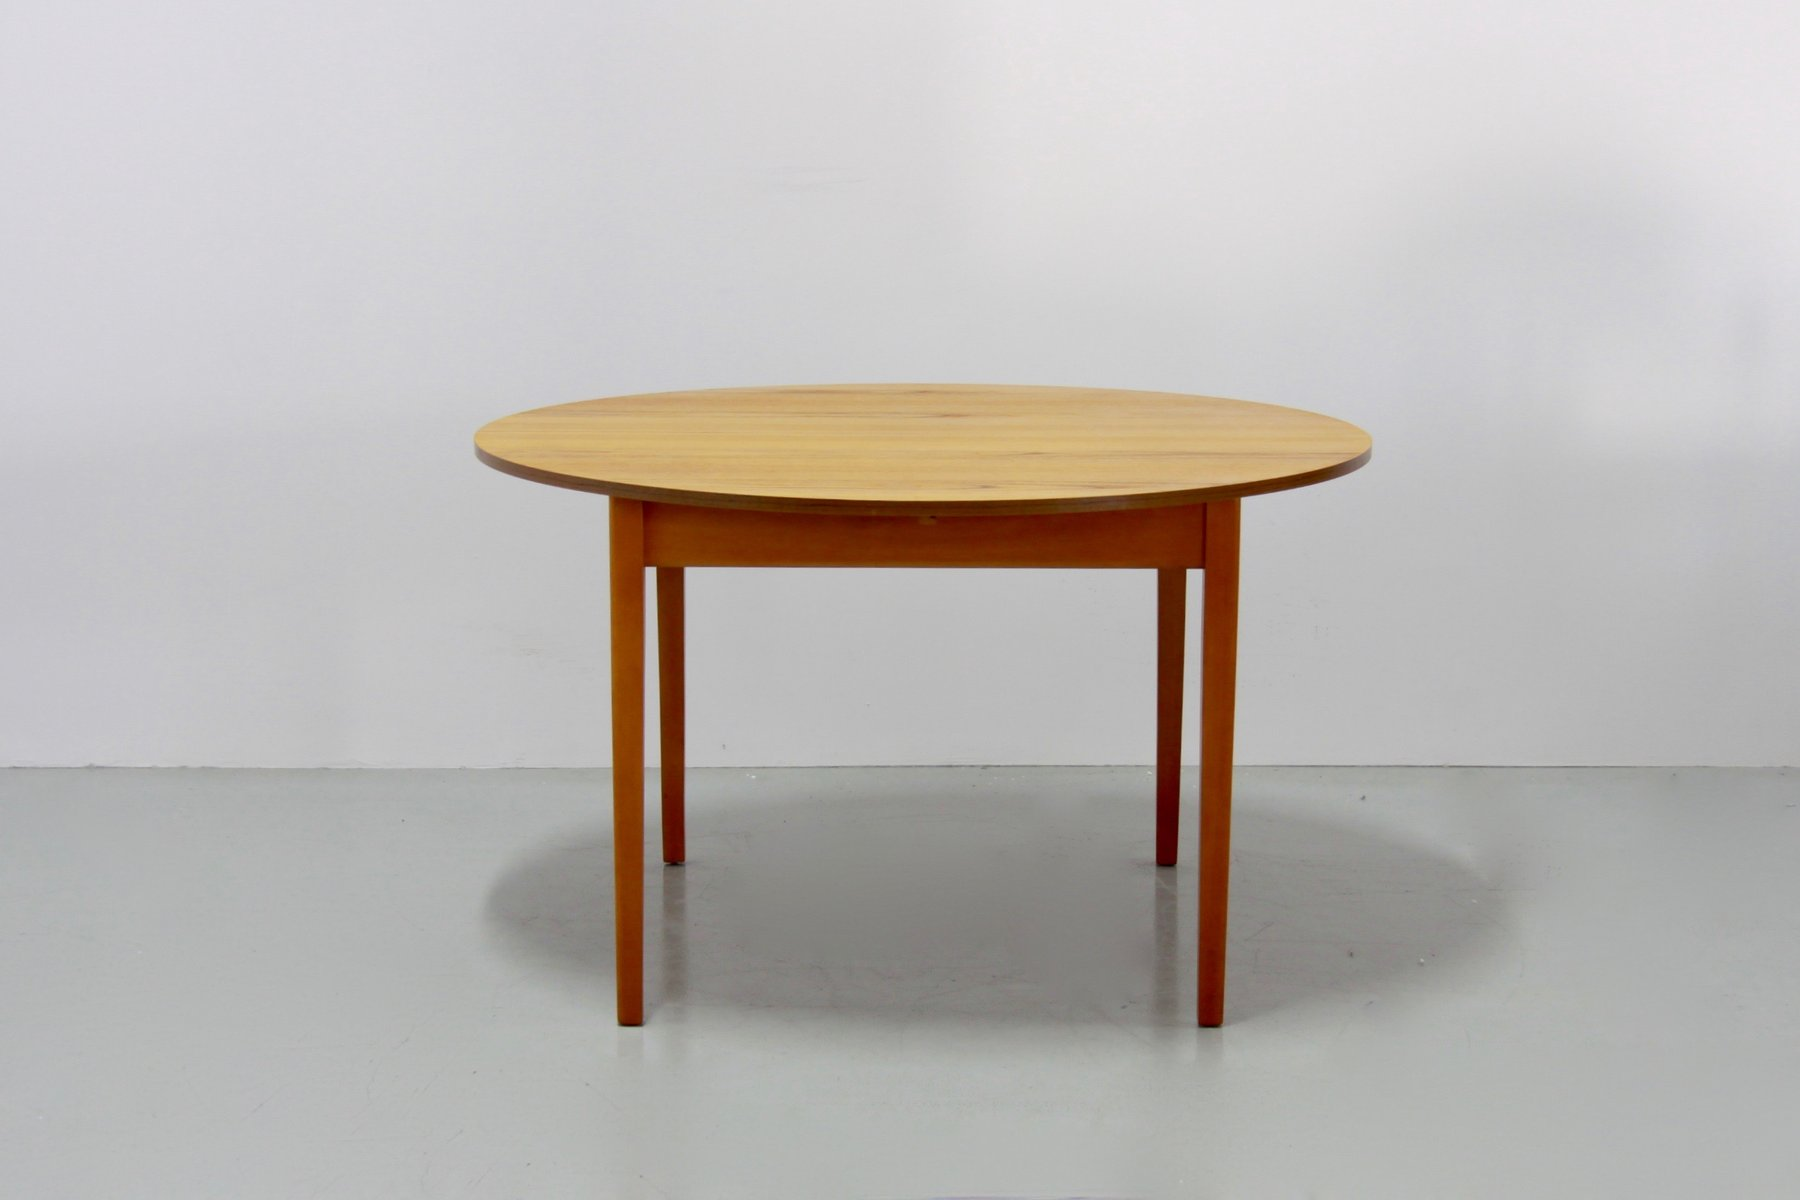 Vintage Danish Extendable Teak Dining Table 1960s For Sale At Pamono